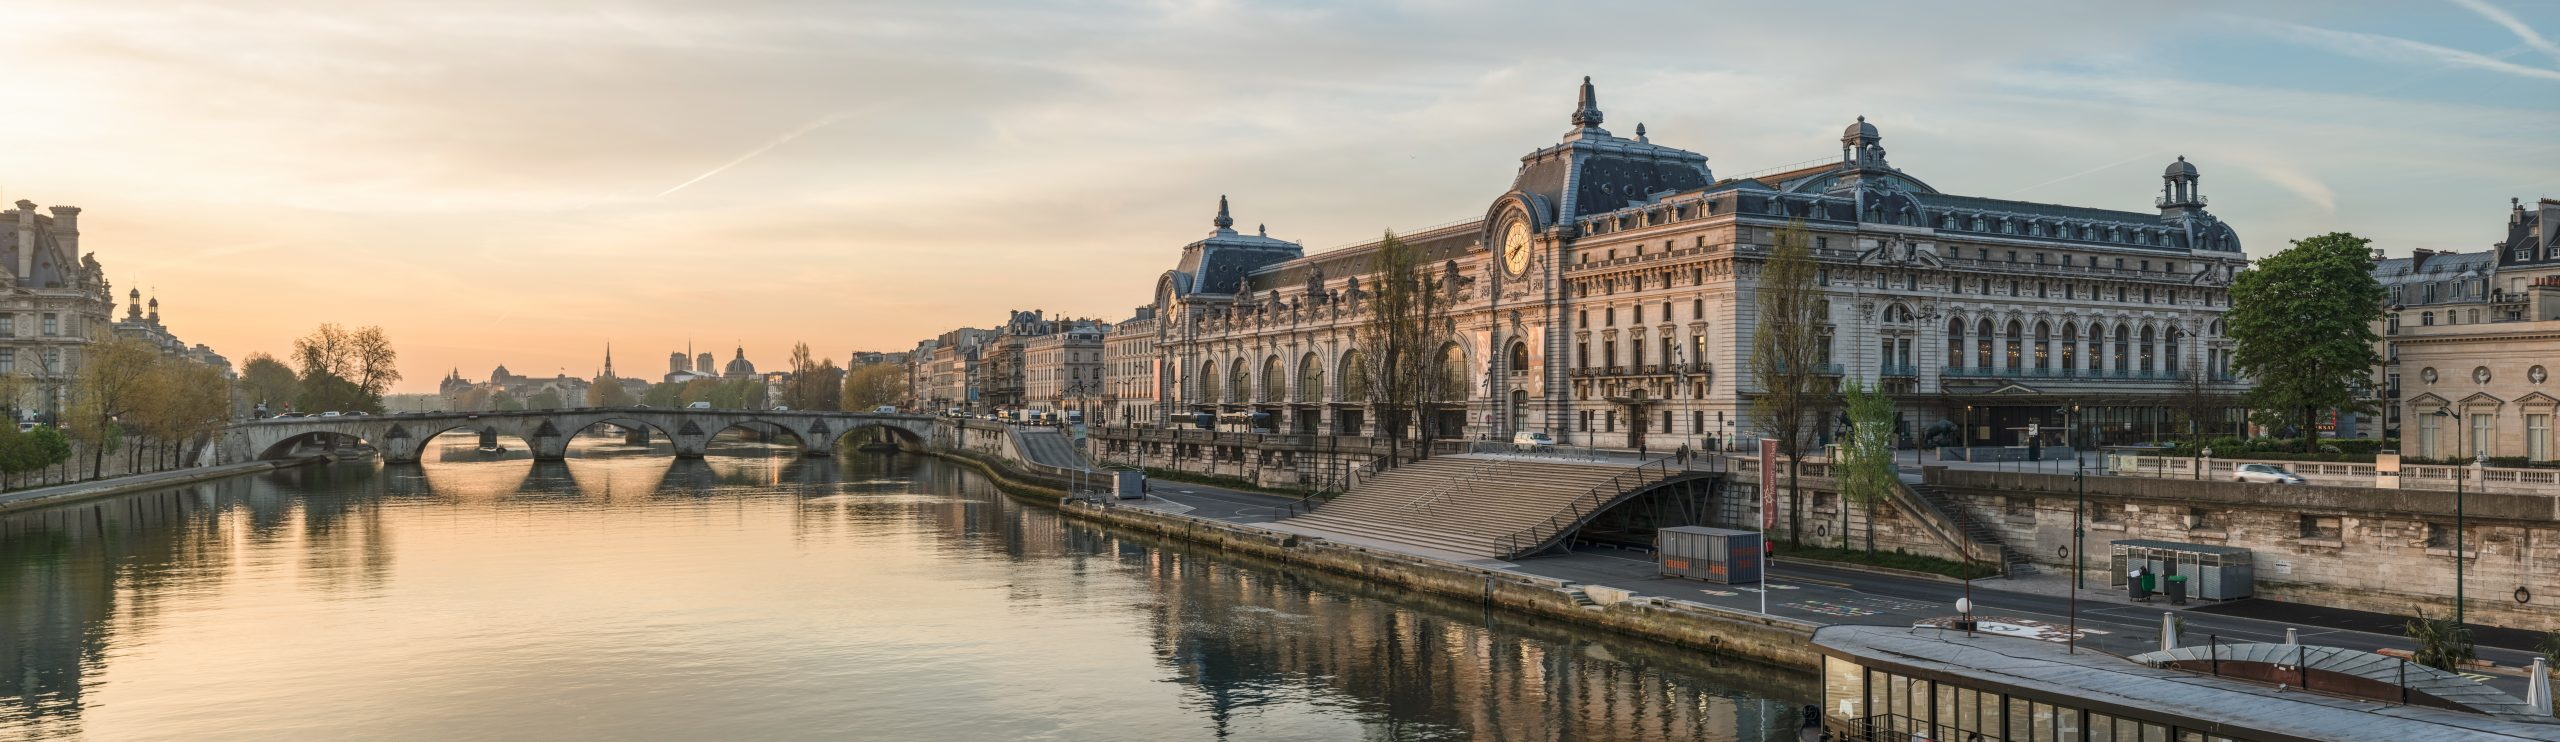 Aesthetically-pleasing-view-of-the-Musee-d'Orsay